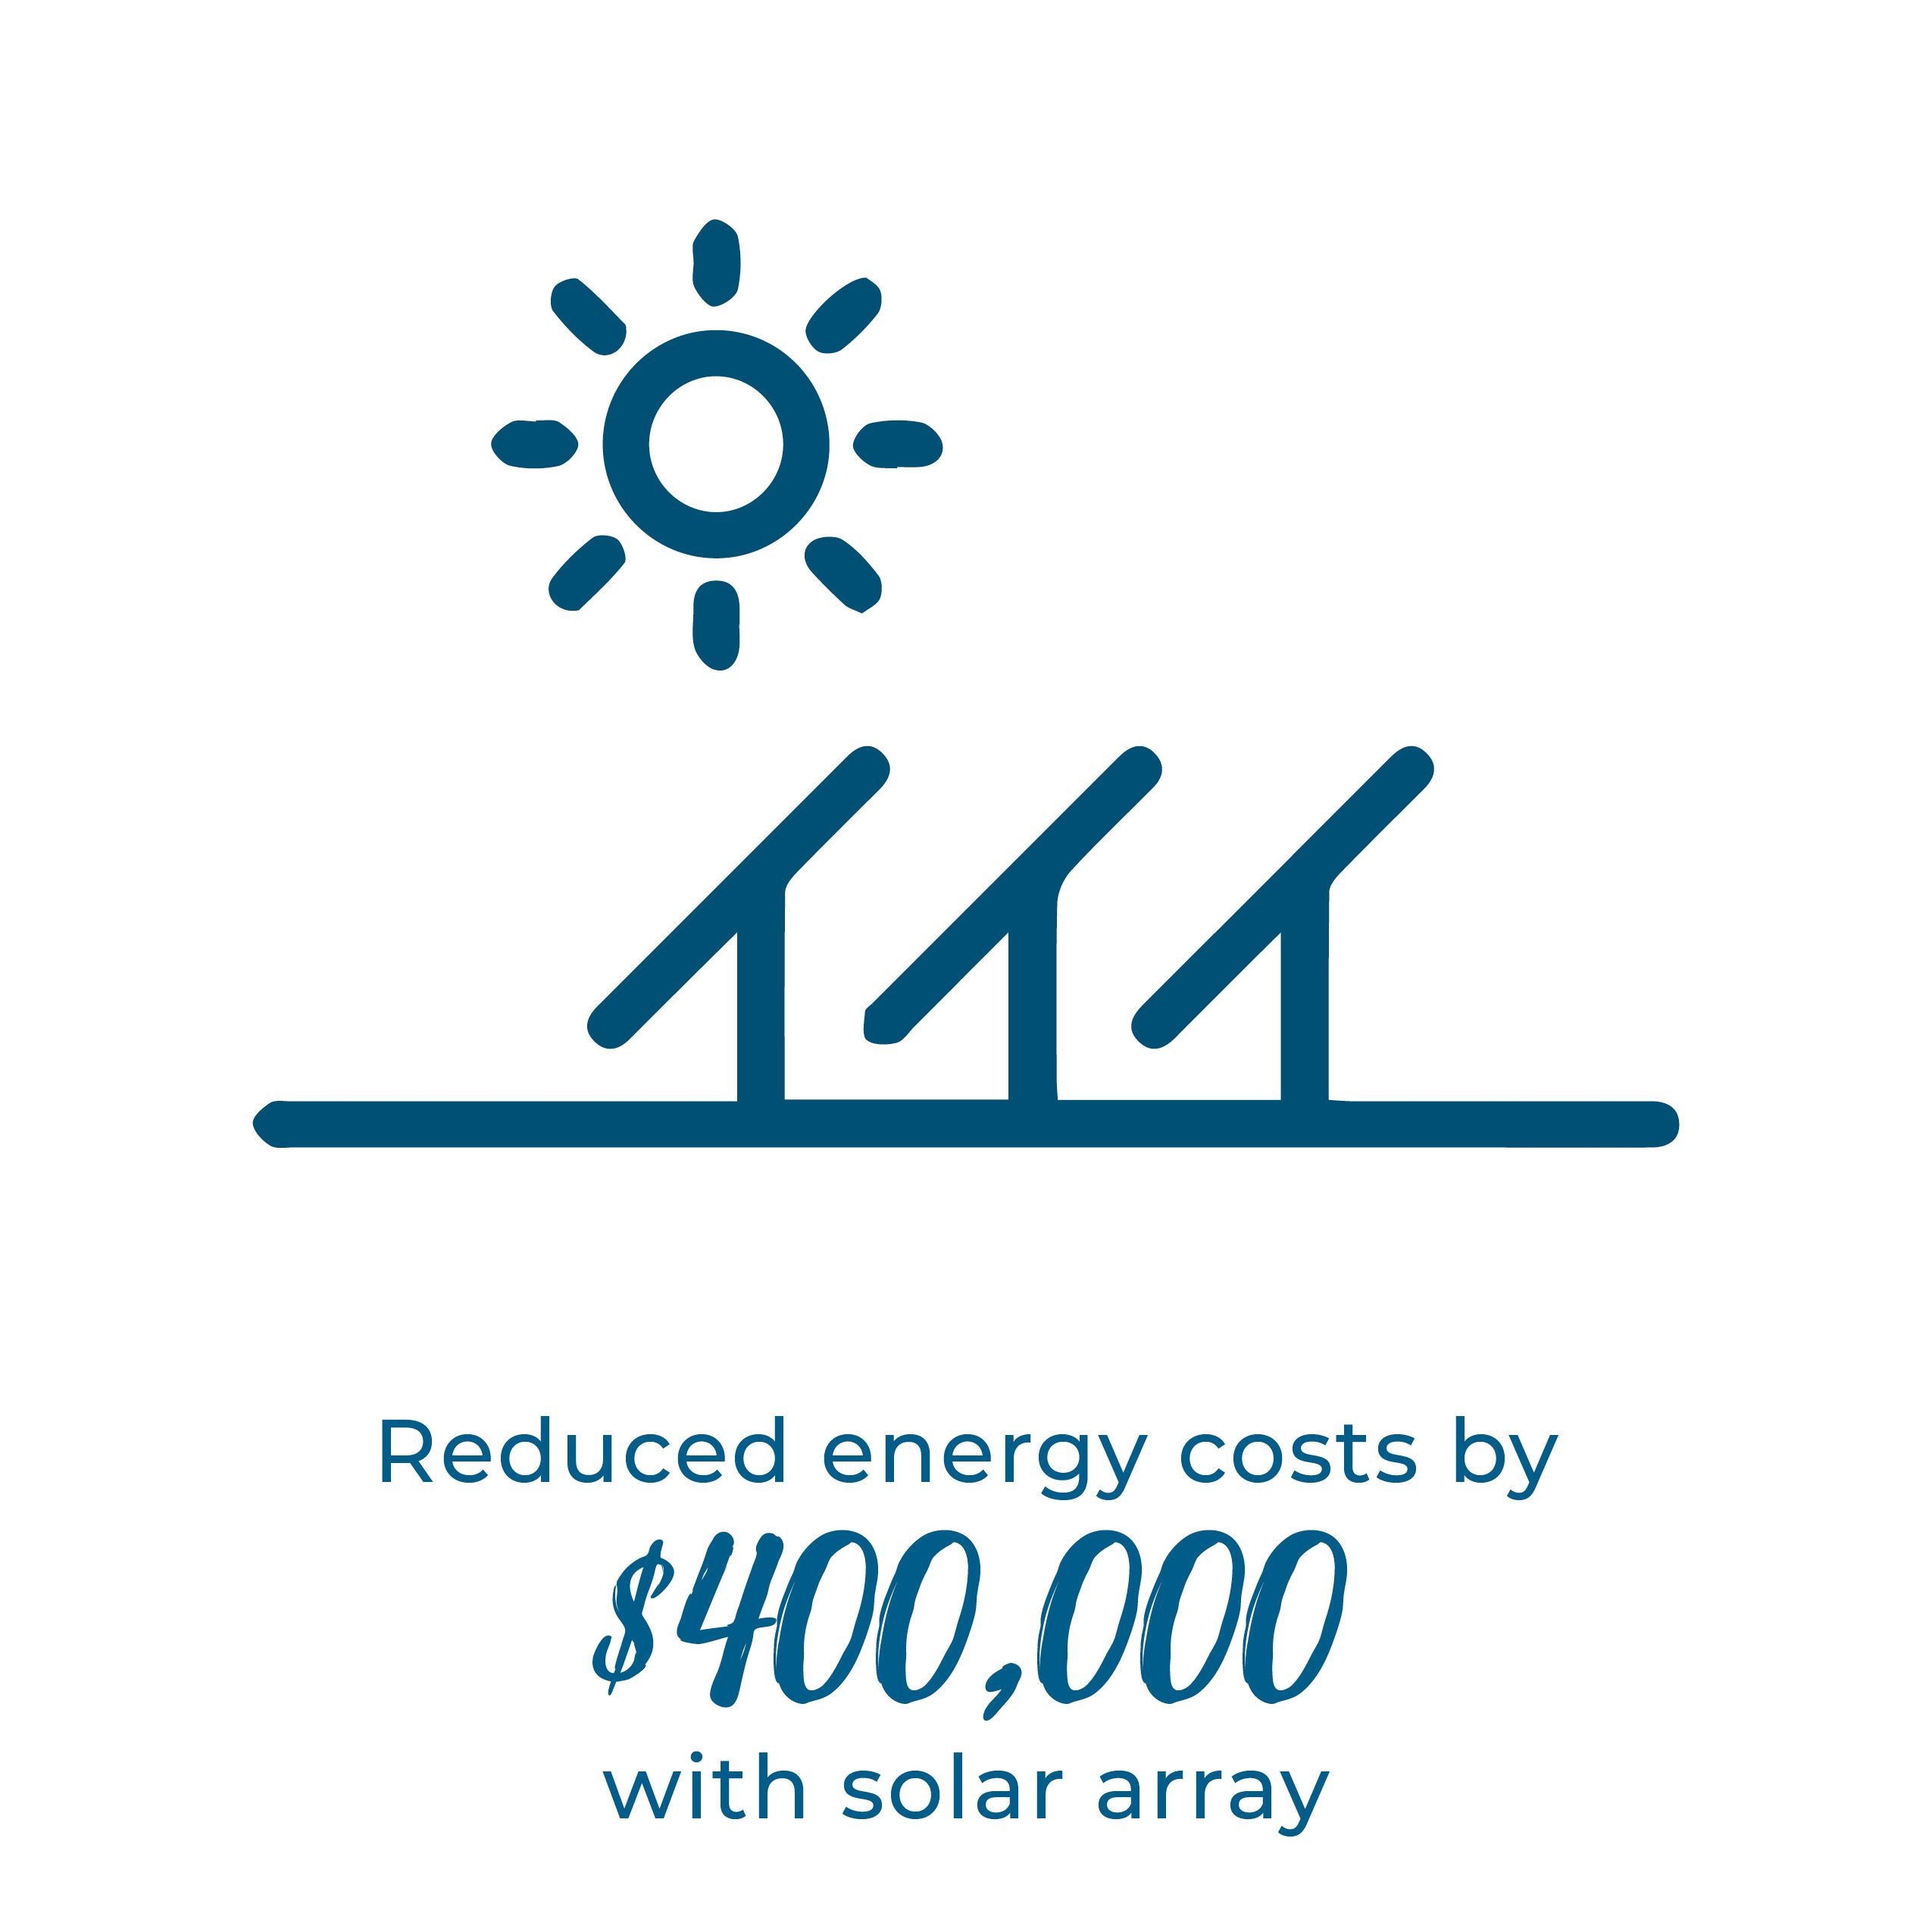 Reduce energy costs by $400,000 with solar array